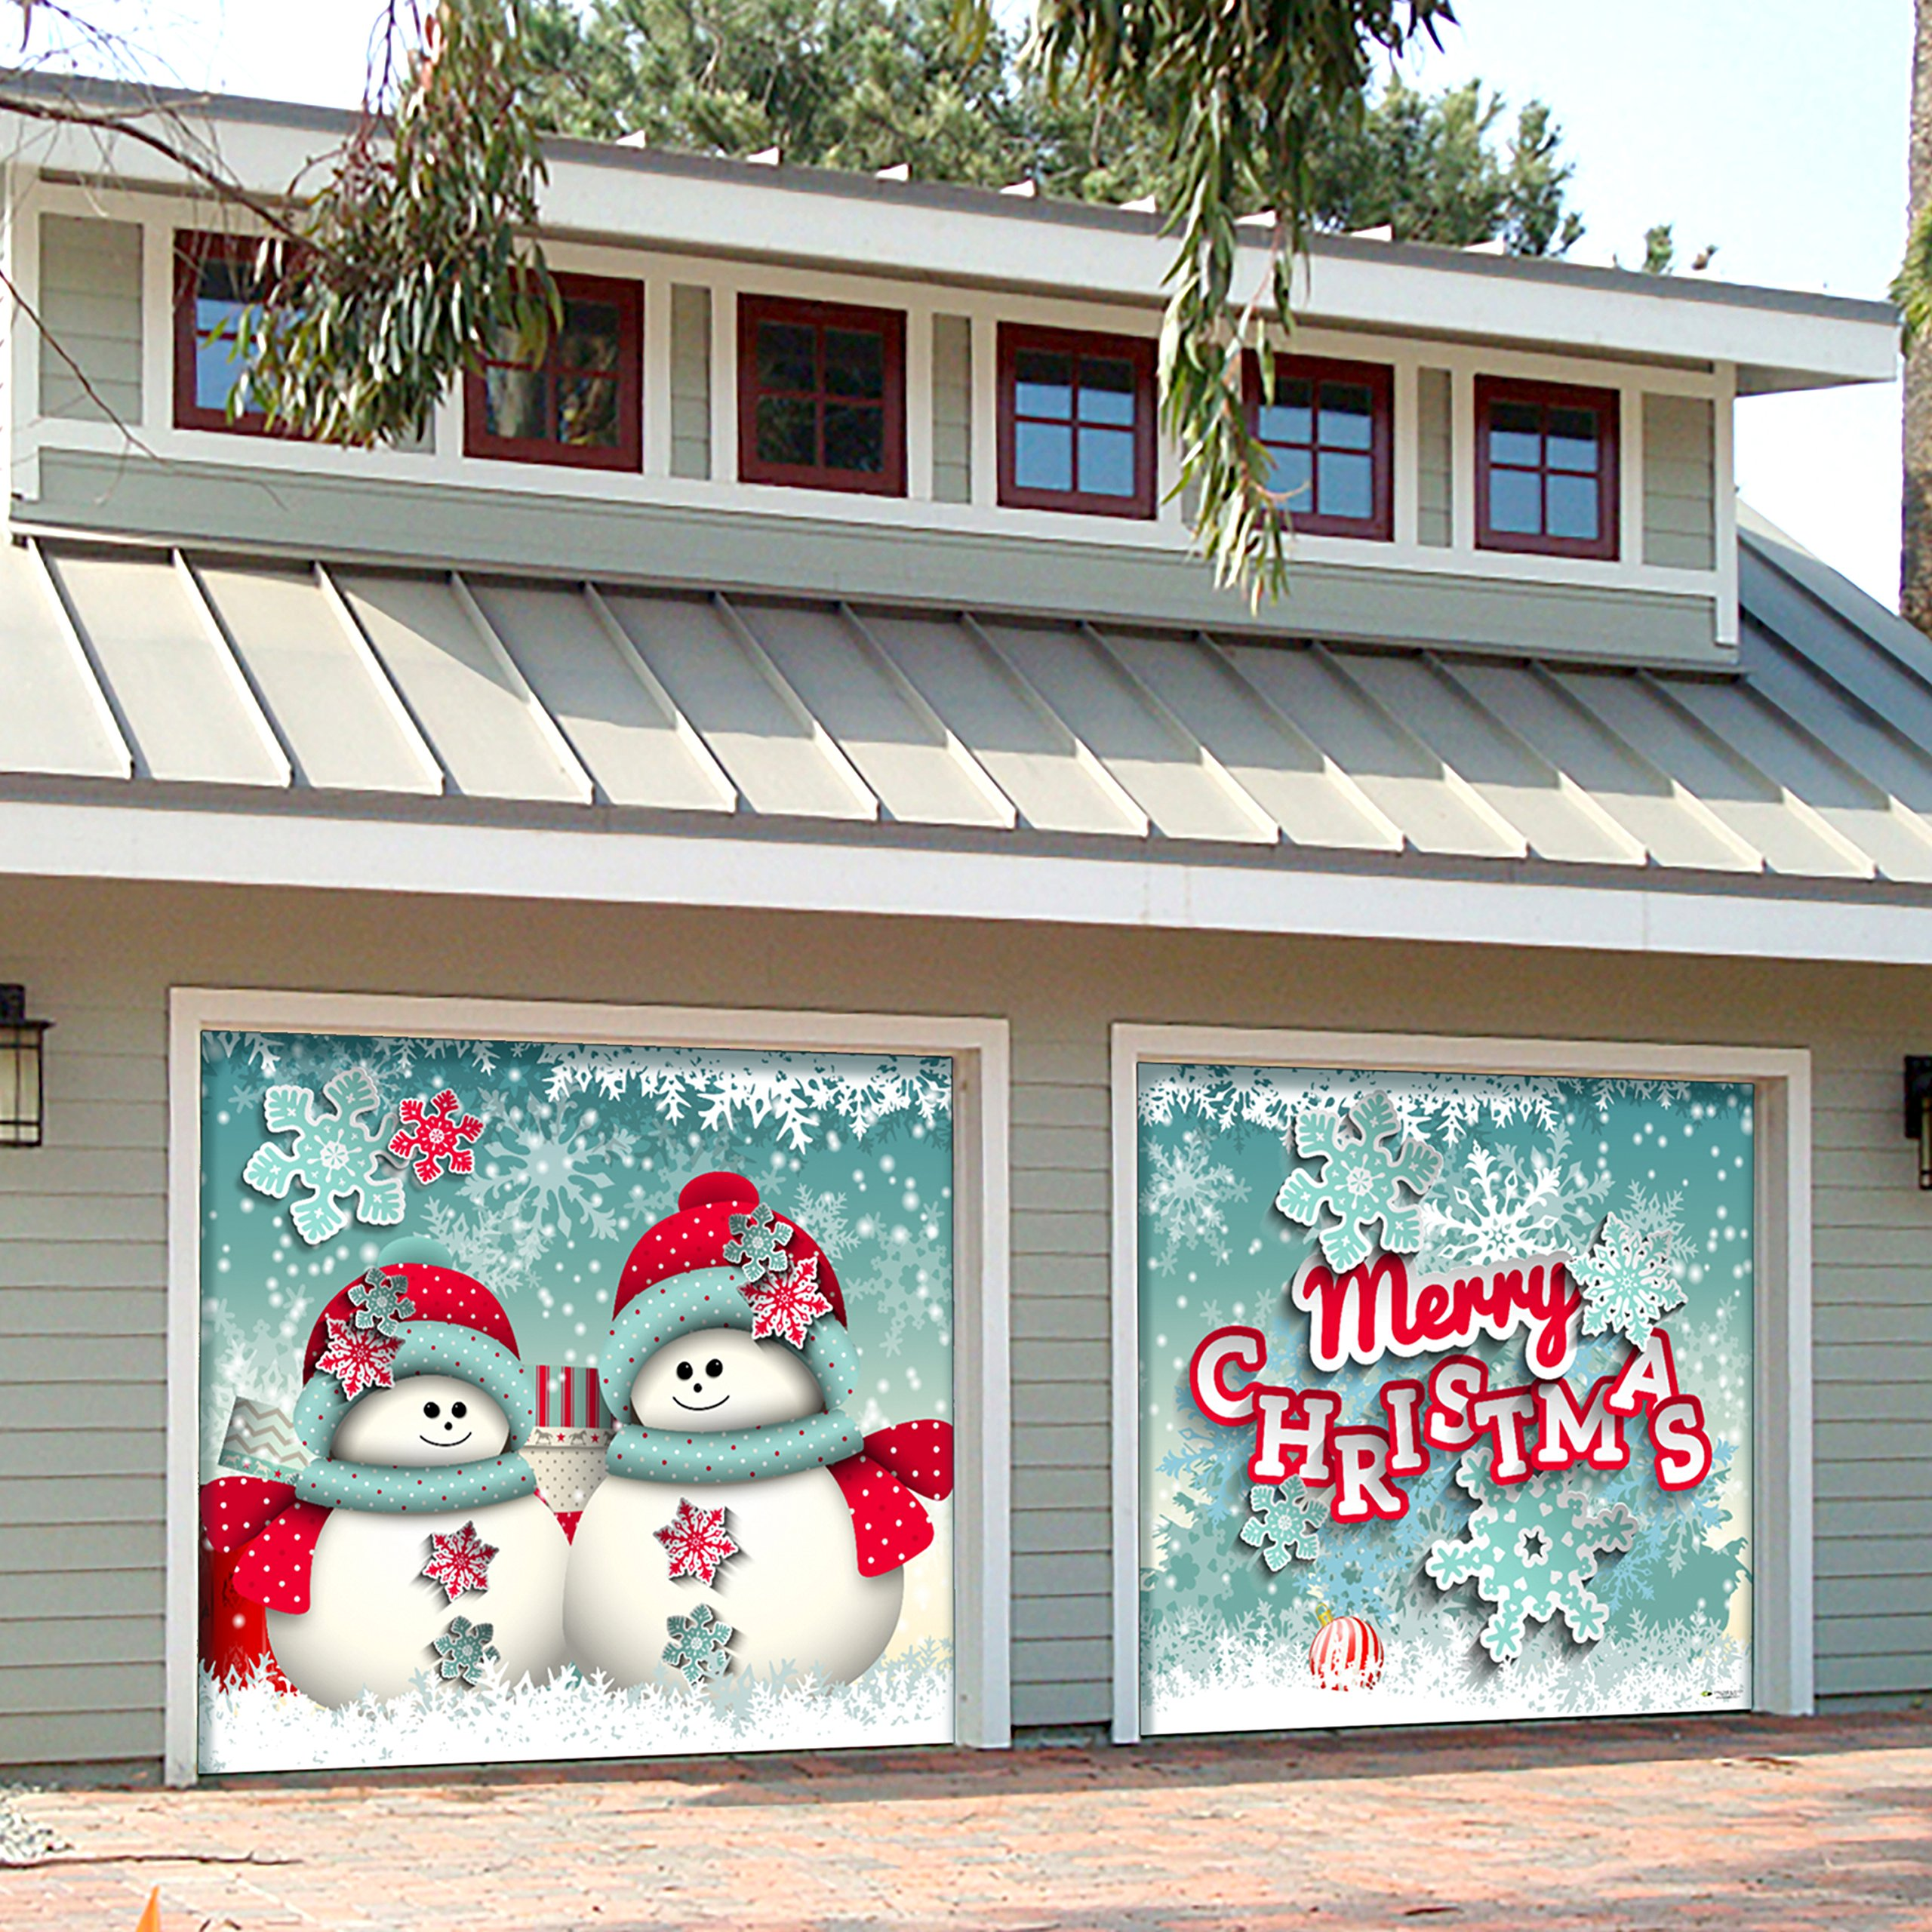 Outdoor Christmas Holiday Garage Door Banner Cover Mural Décoration - Snowman Christmas - Outdoor Holiday 2 Car Split Garage Door Banner Décor Sign , Two 7'x 8' Graphic Kits by Victory Corps